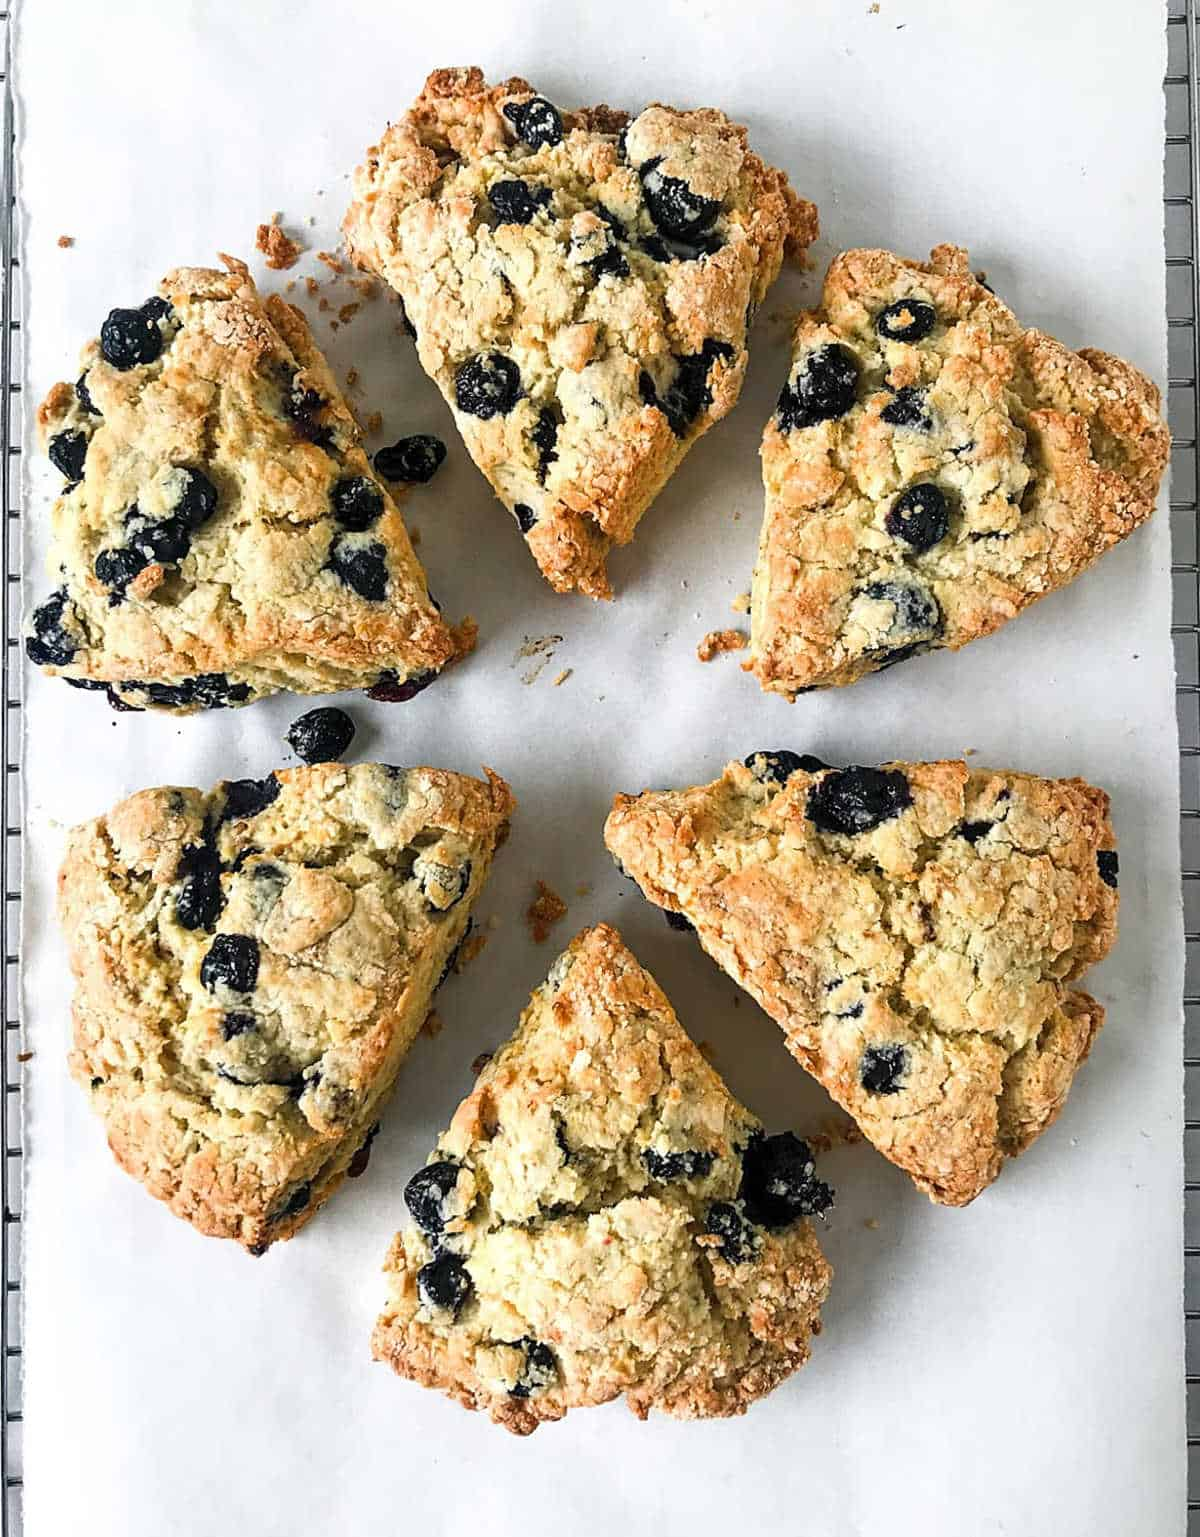 Top view of baked blueberry scones in a circle on white parchment paper